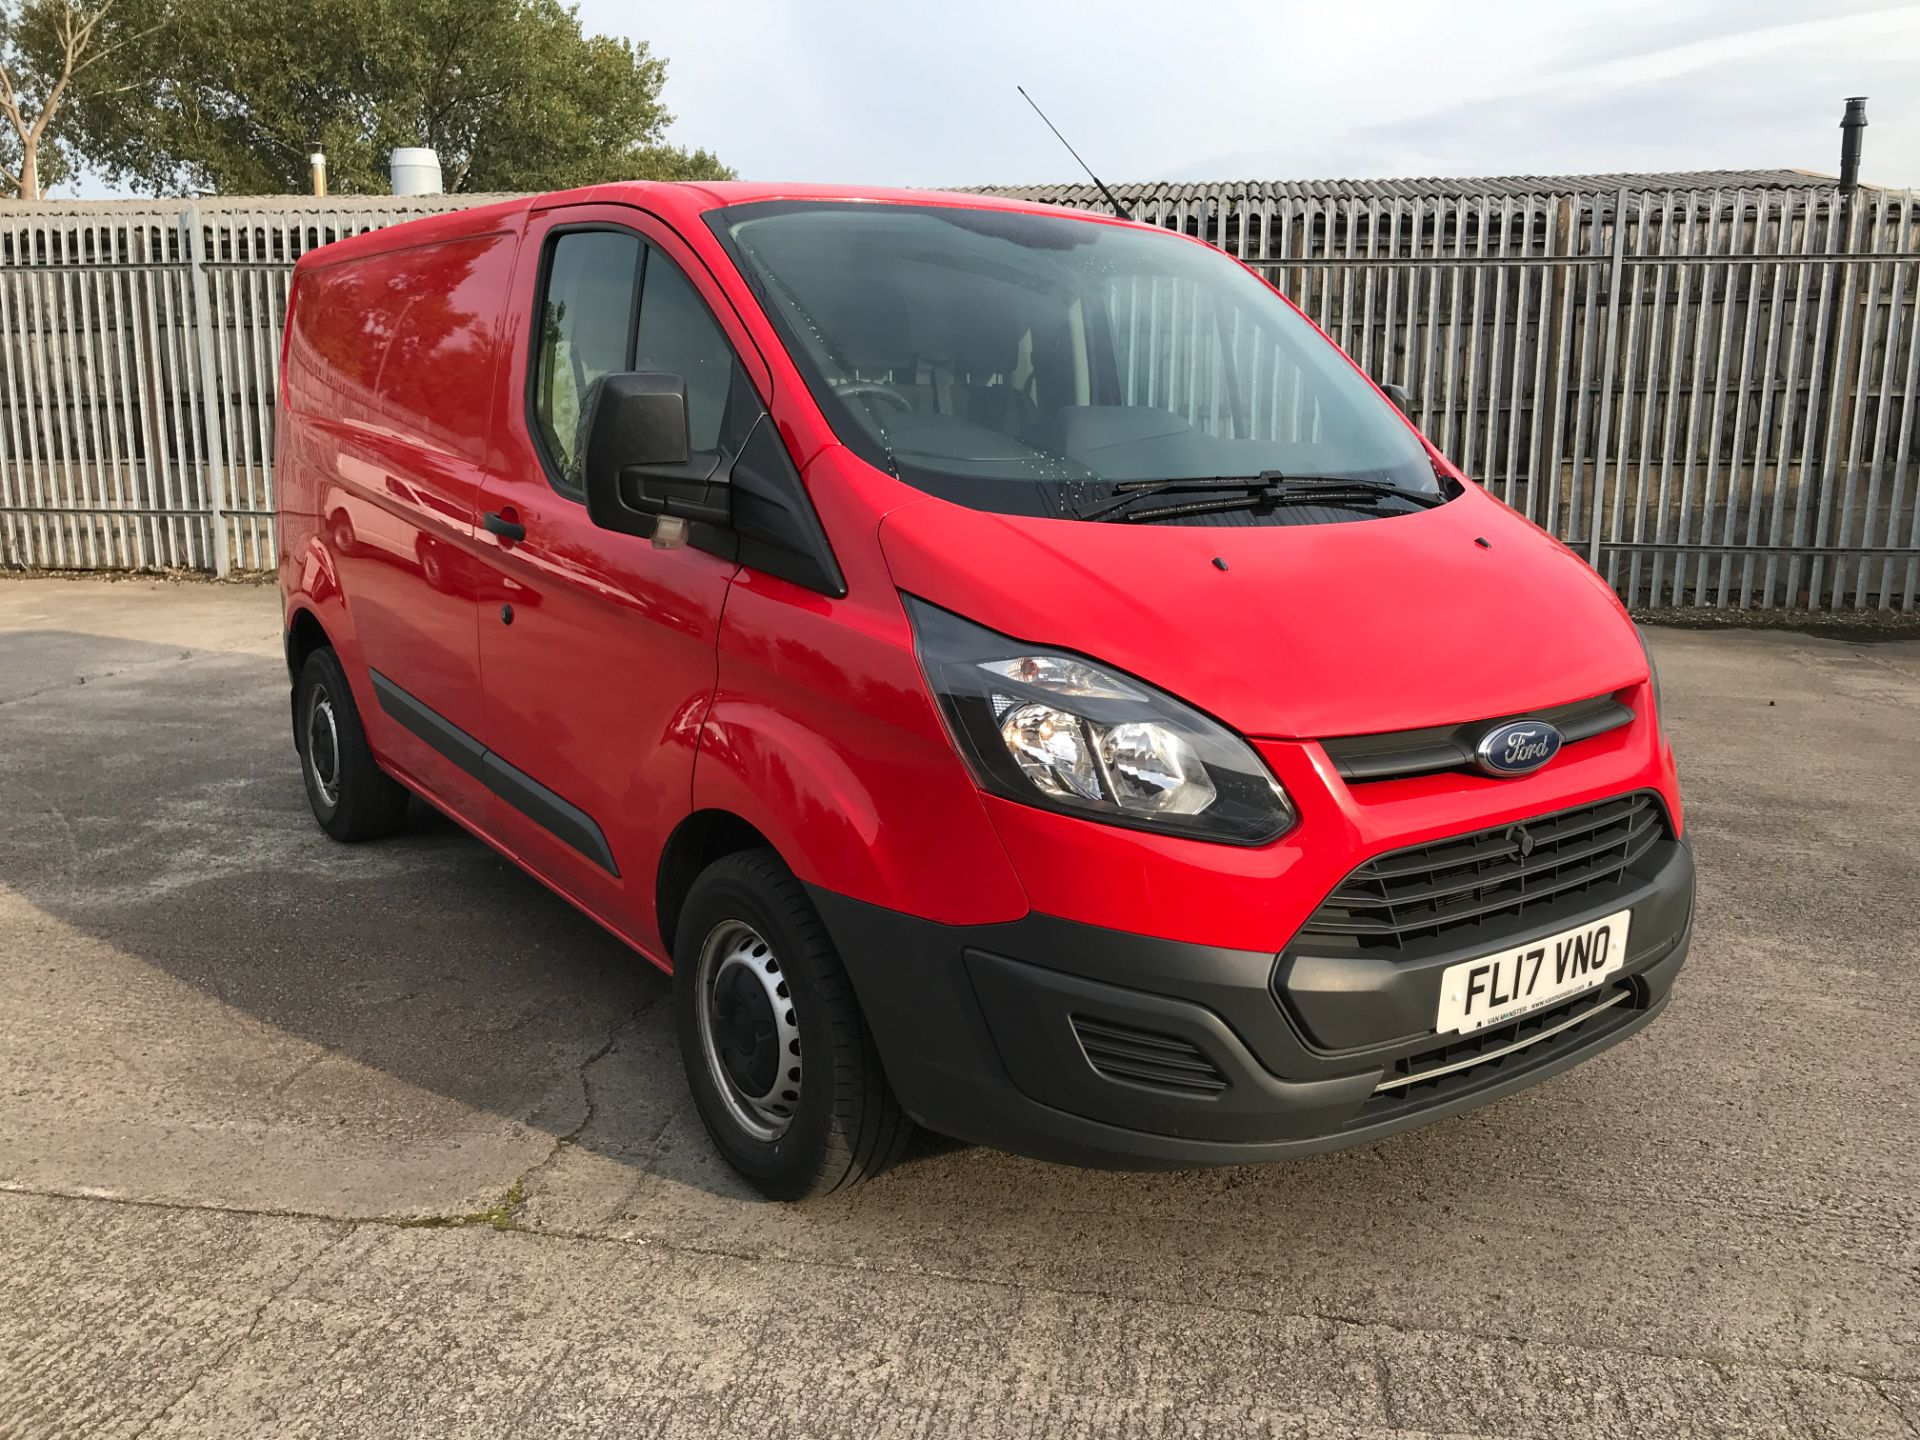 2017 Ford Transit Custom 290 L1 2.0TDCI 105PS LOW ROOF EURO 6 (FL17VNO)